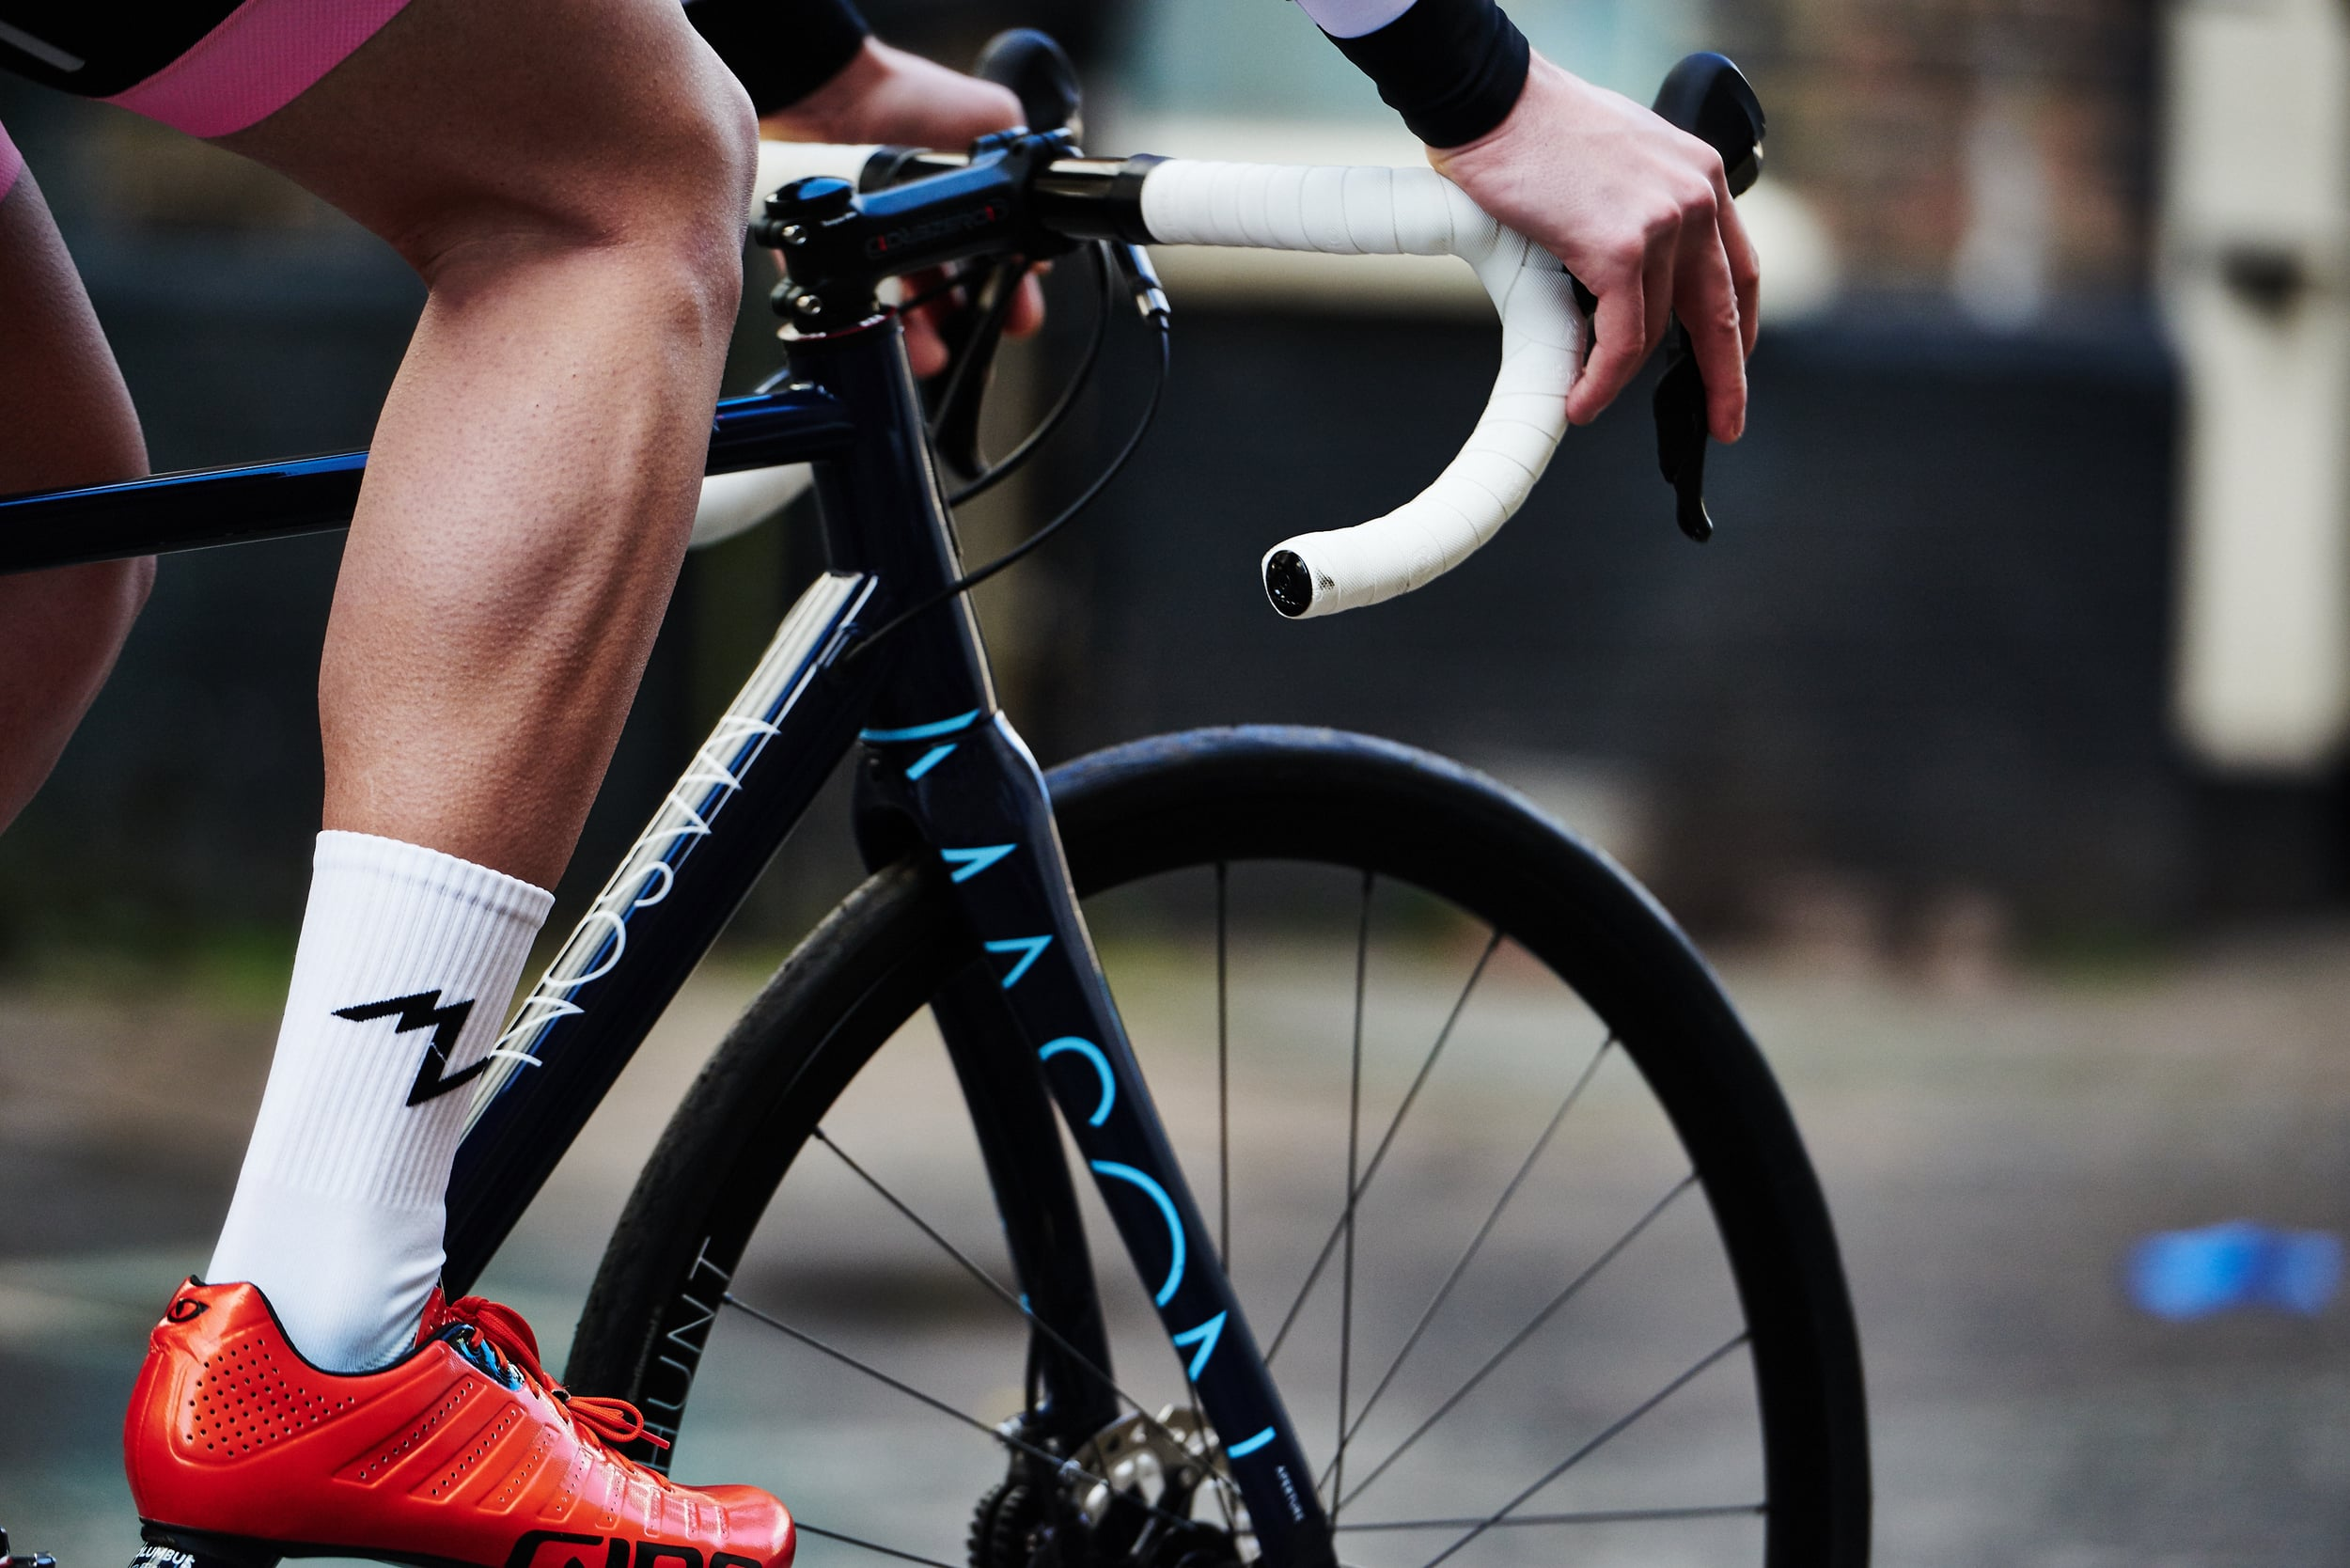 Lifestyle cycling photography for Mason Cycles by Jonty Tacon